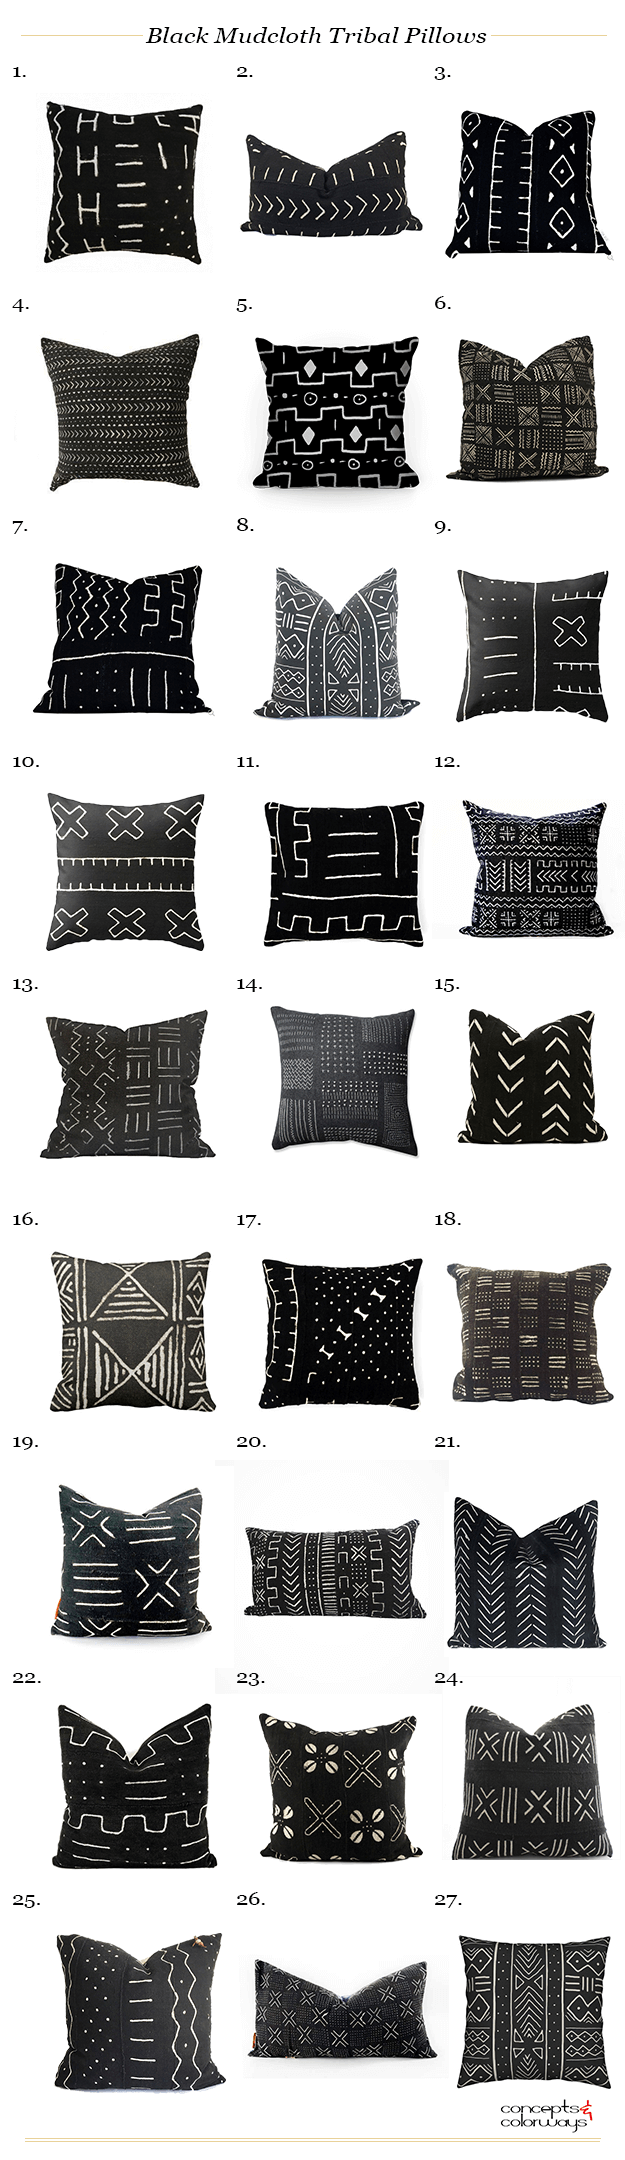 black mudcloth tribal pillows product roundup